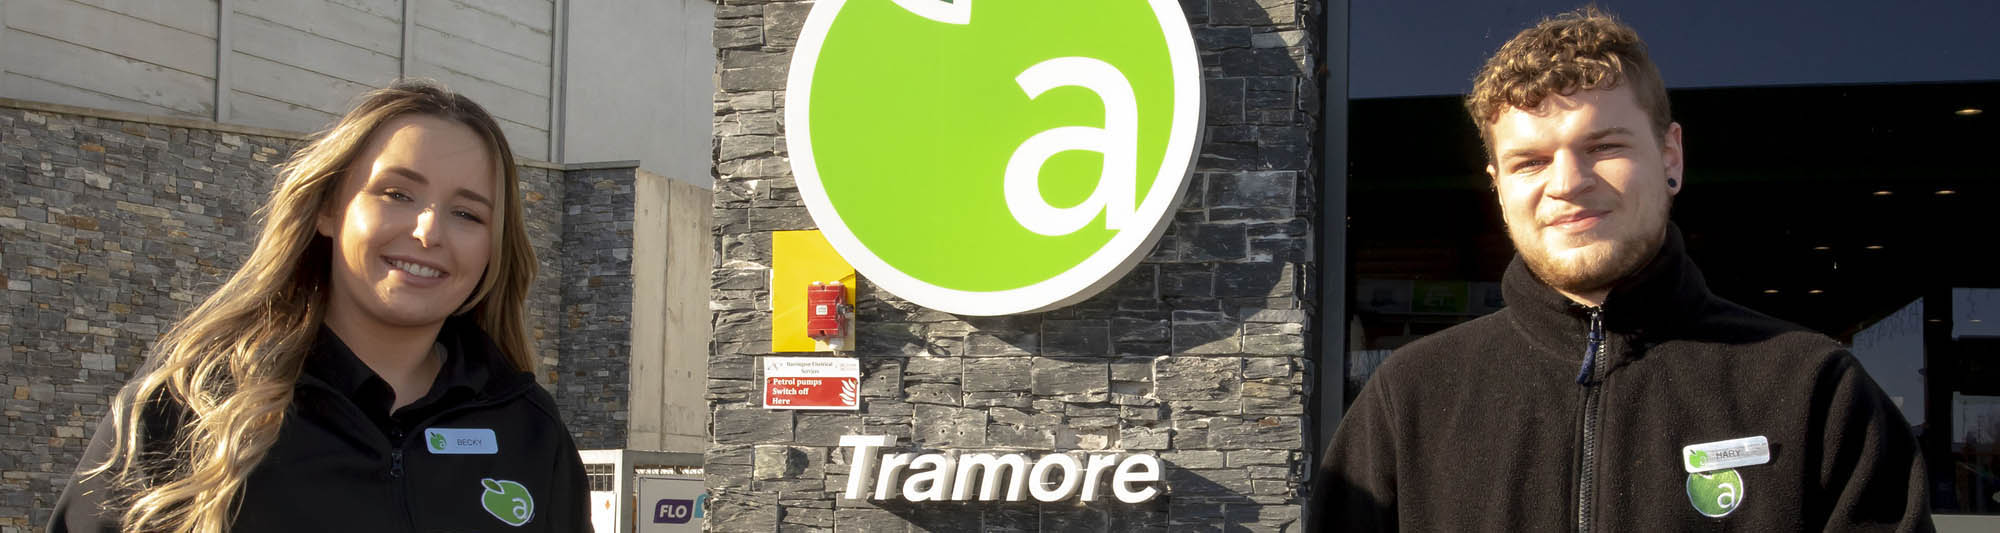 Applegreen, Tramore, Co. Waterford celebrates Lotto Plus 1 €1 million top prize